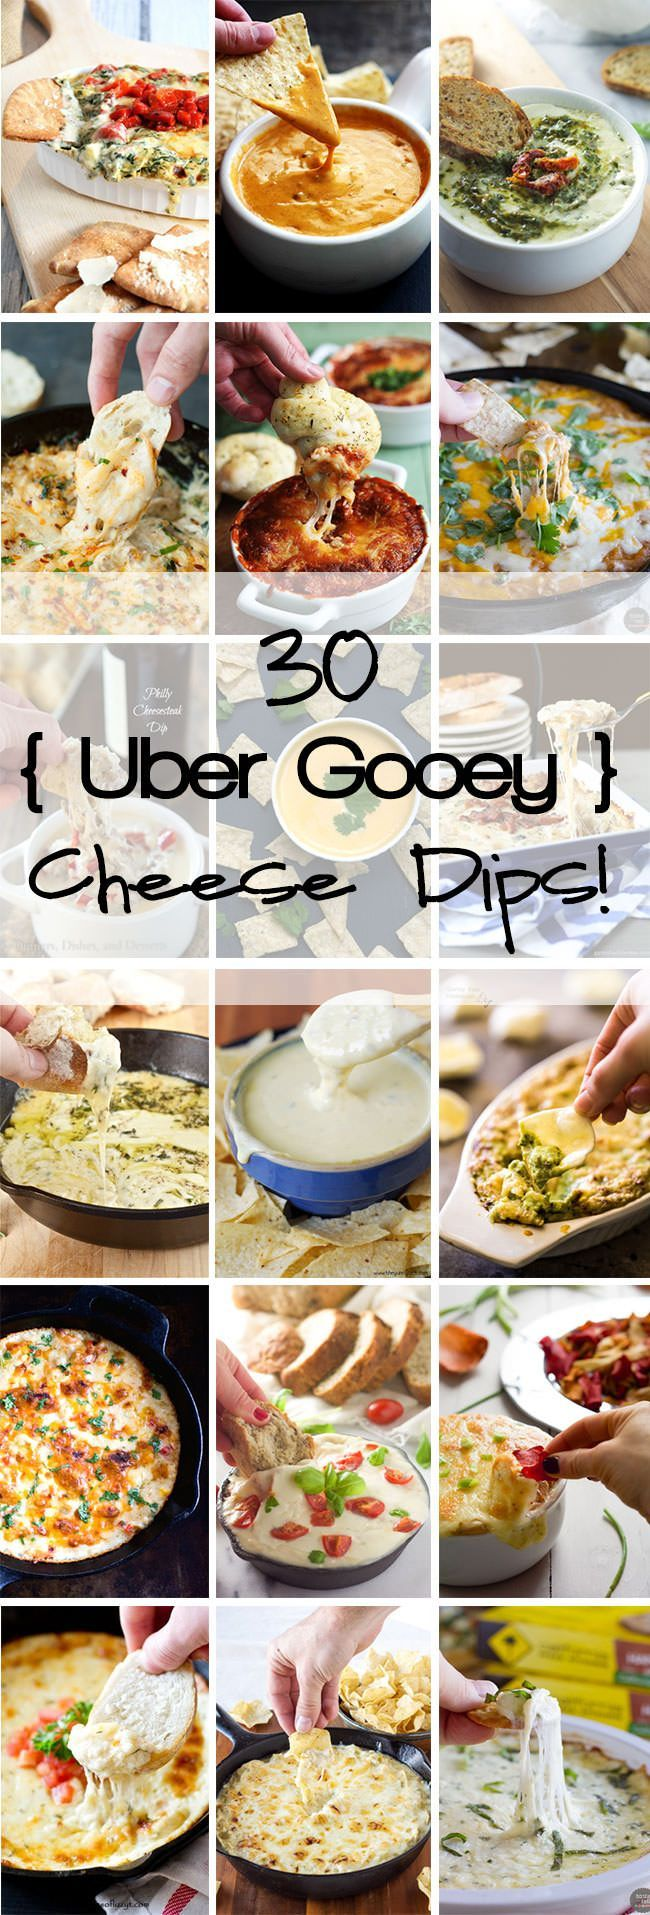 30 uber gooey cheese dips that will make your mouth water and your stomach growl!